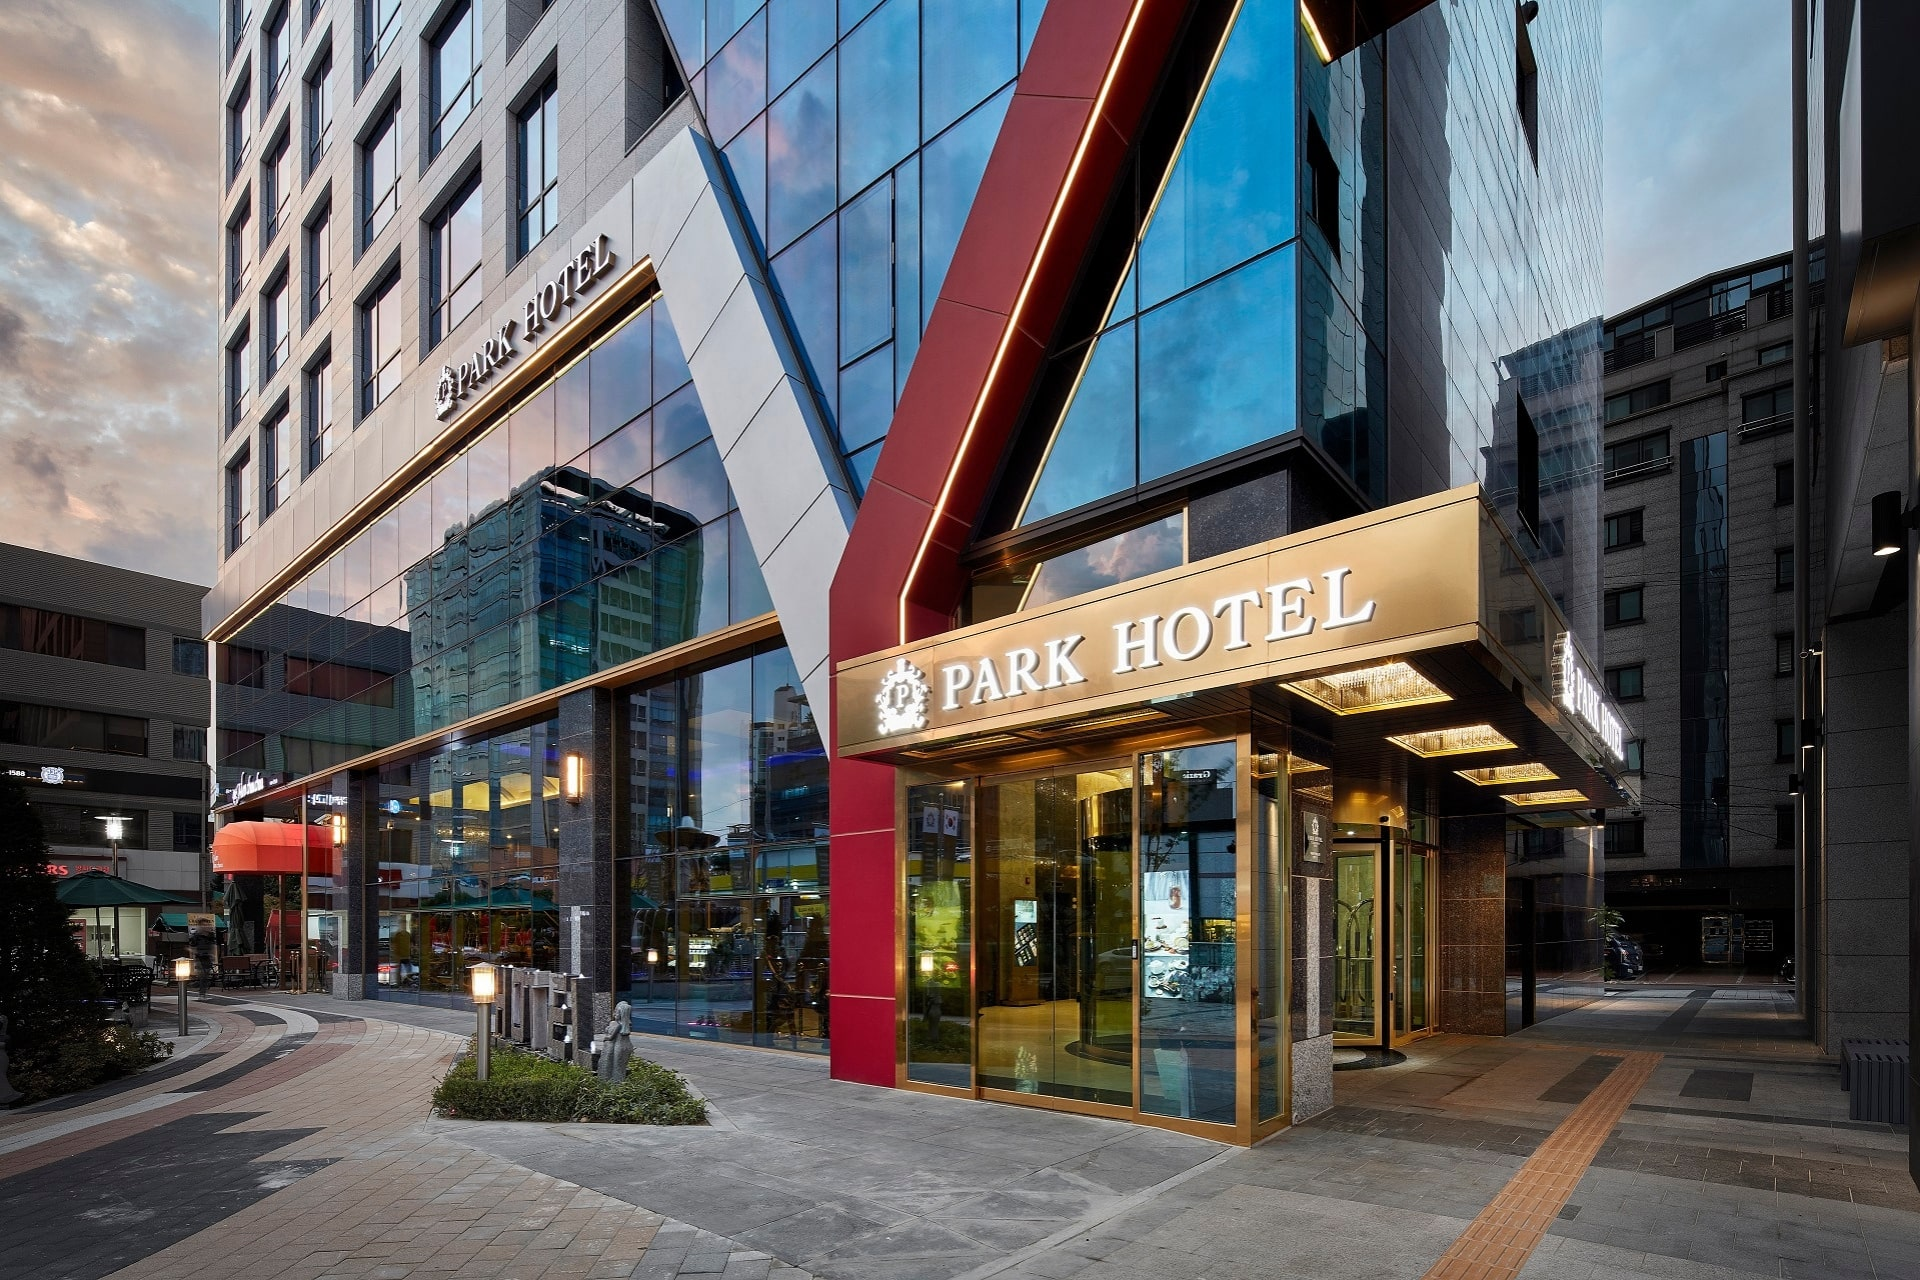 Park Hotel Yeongdeungpo Promotions and Offers